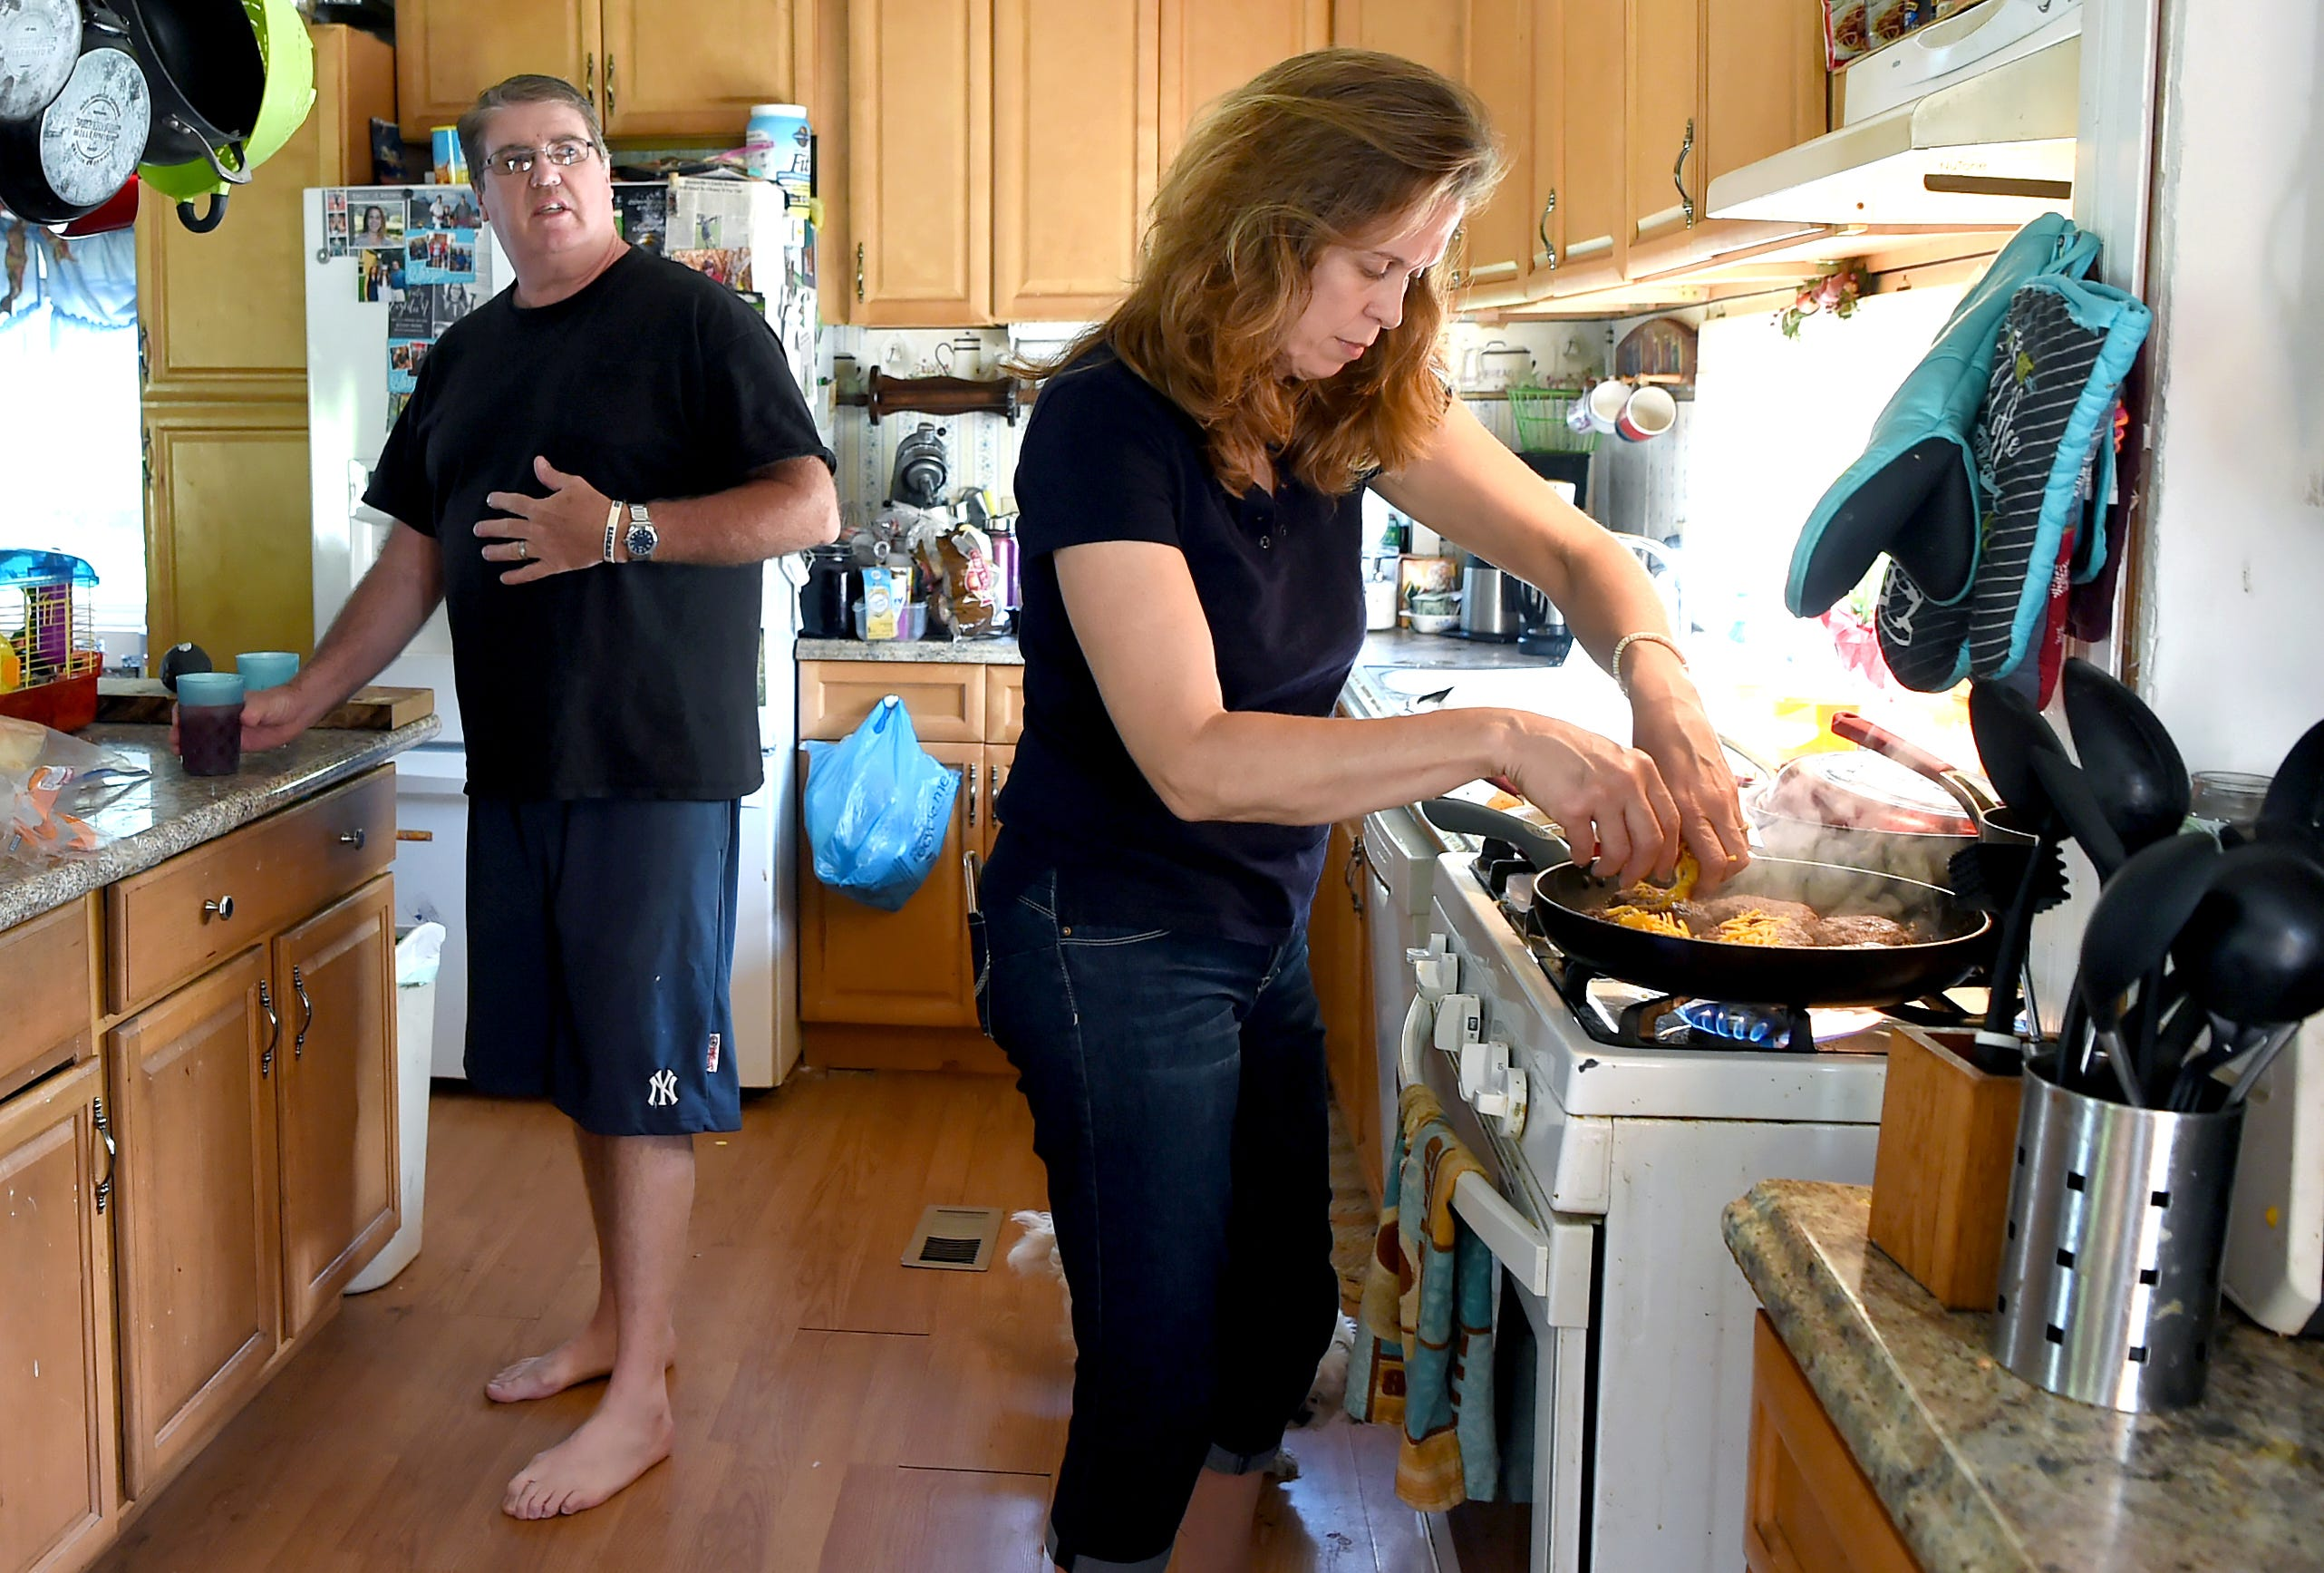 Sandy Brown, right, prepares hamburgers in the kitchen of the family's rural East Branch home while her husband looks on before daughter's Emily's high school graduation. With daughters requiring high calorie diets due to cystic fibrosis, the couple travels to Aldi's in Johnson City to stock up on large quantities of food.